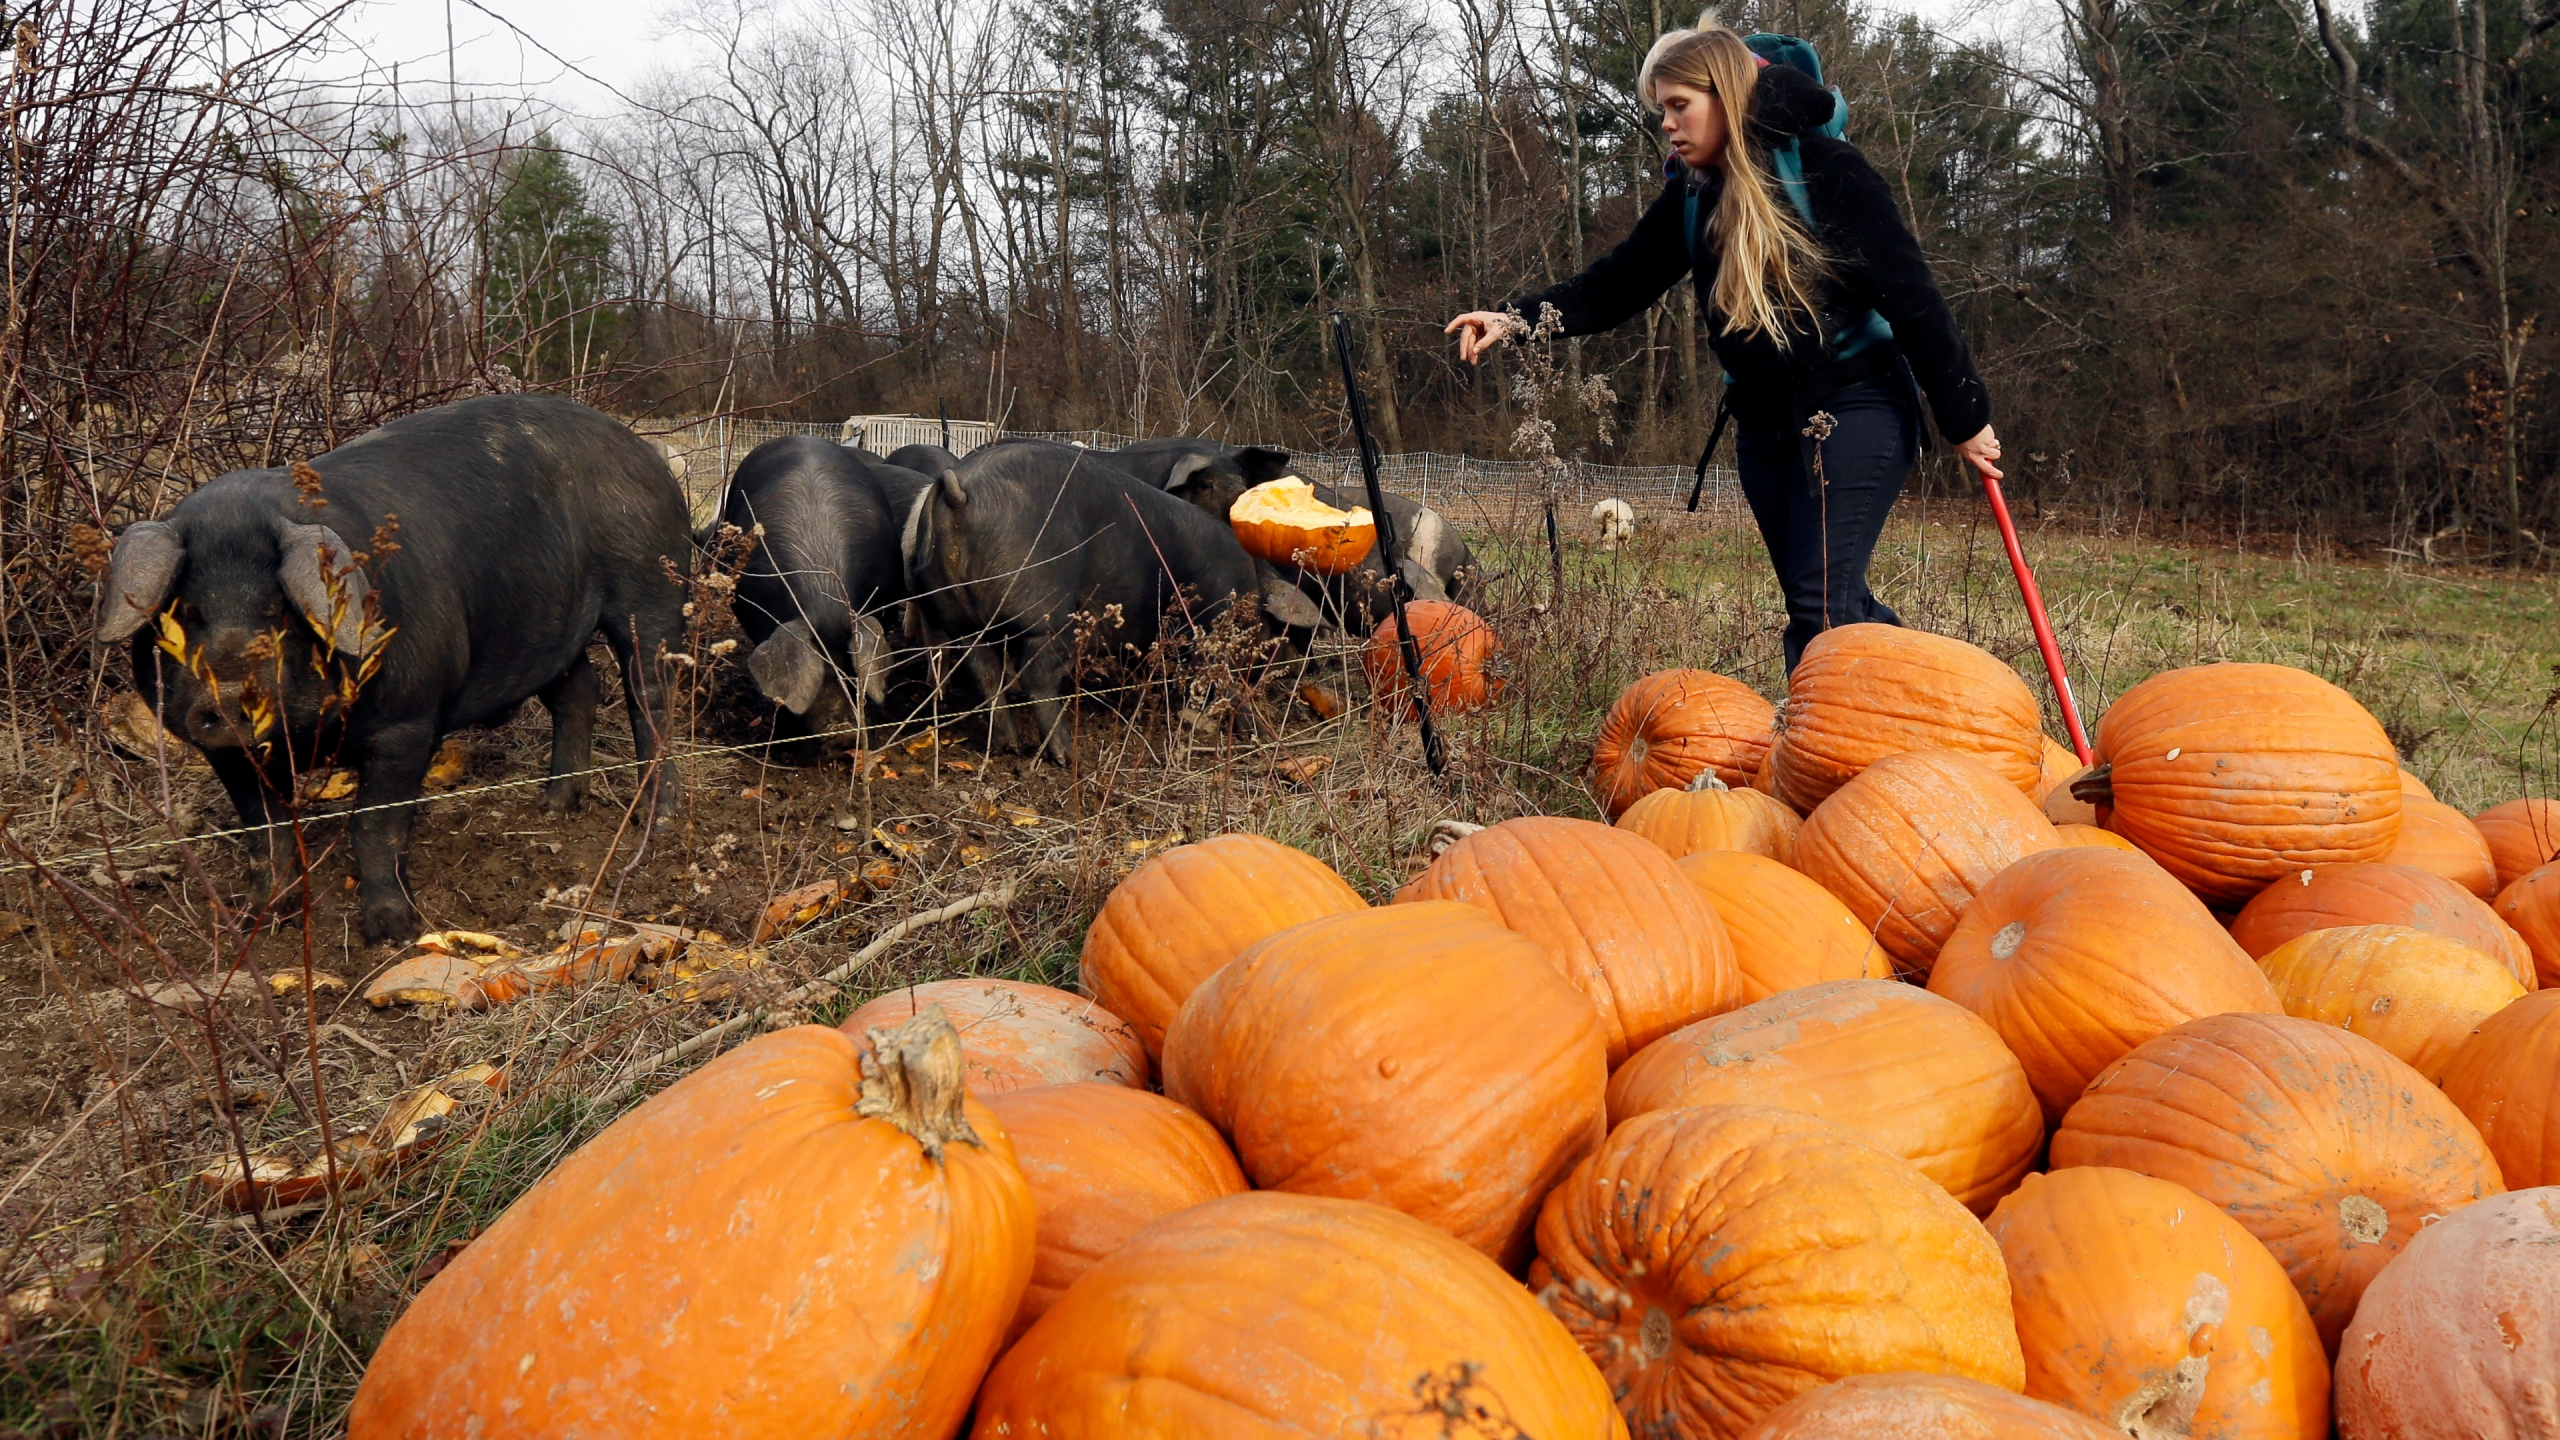 In this Thursday, Nov. 15, 2012 photo, Schuyler Gail feeds pumpkins to pigs at the family's Climbing Tree Farm in New Lebanon, N.Y. (AP Photo/Mike Groll)